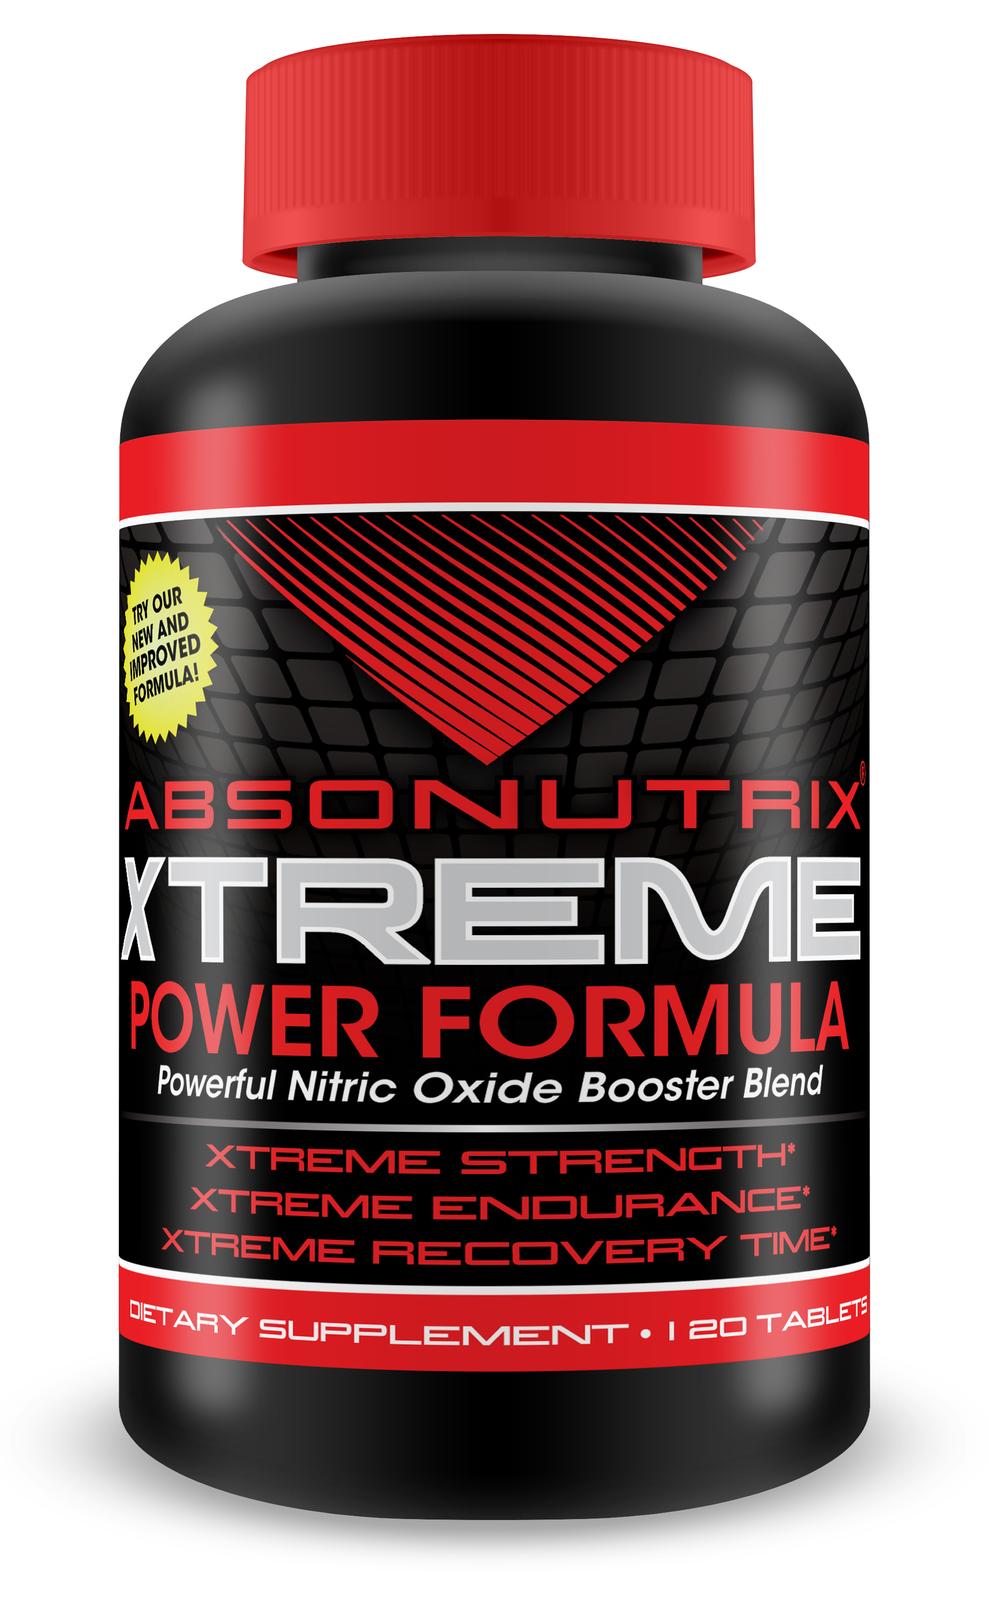 Absonutrix Xtreme Nitric oxide formula powerful nitric oxide booster blend 3000mg L-ARGININE 120 Tablets helps build muscles